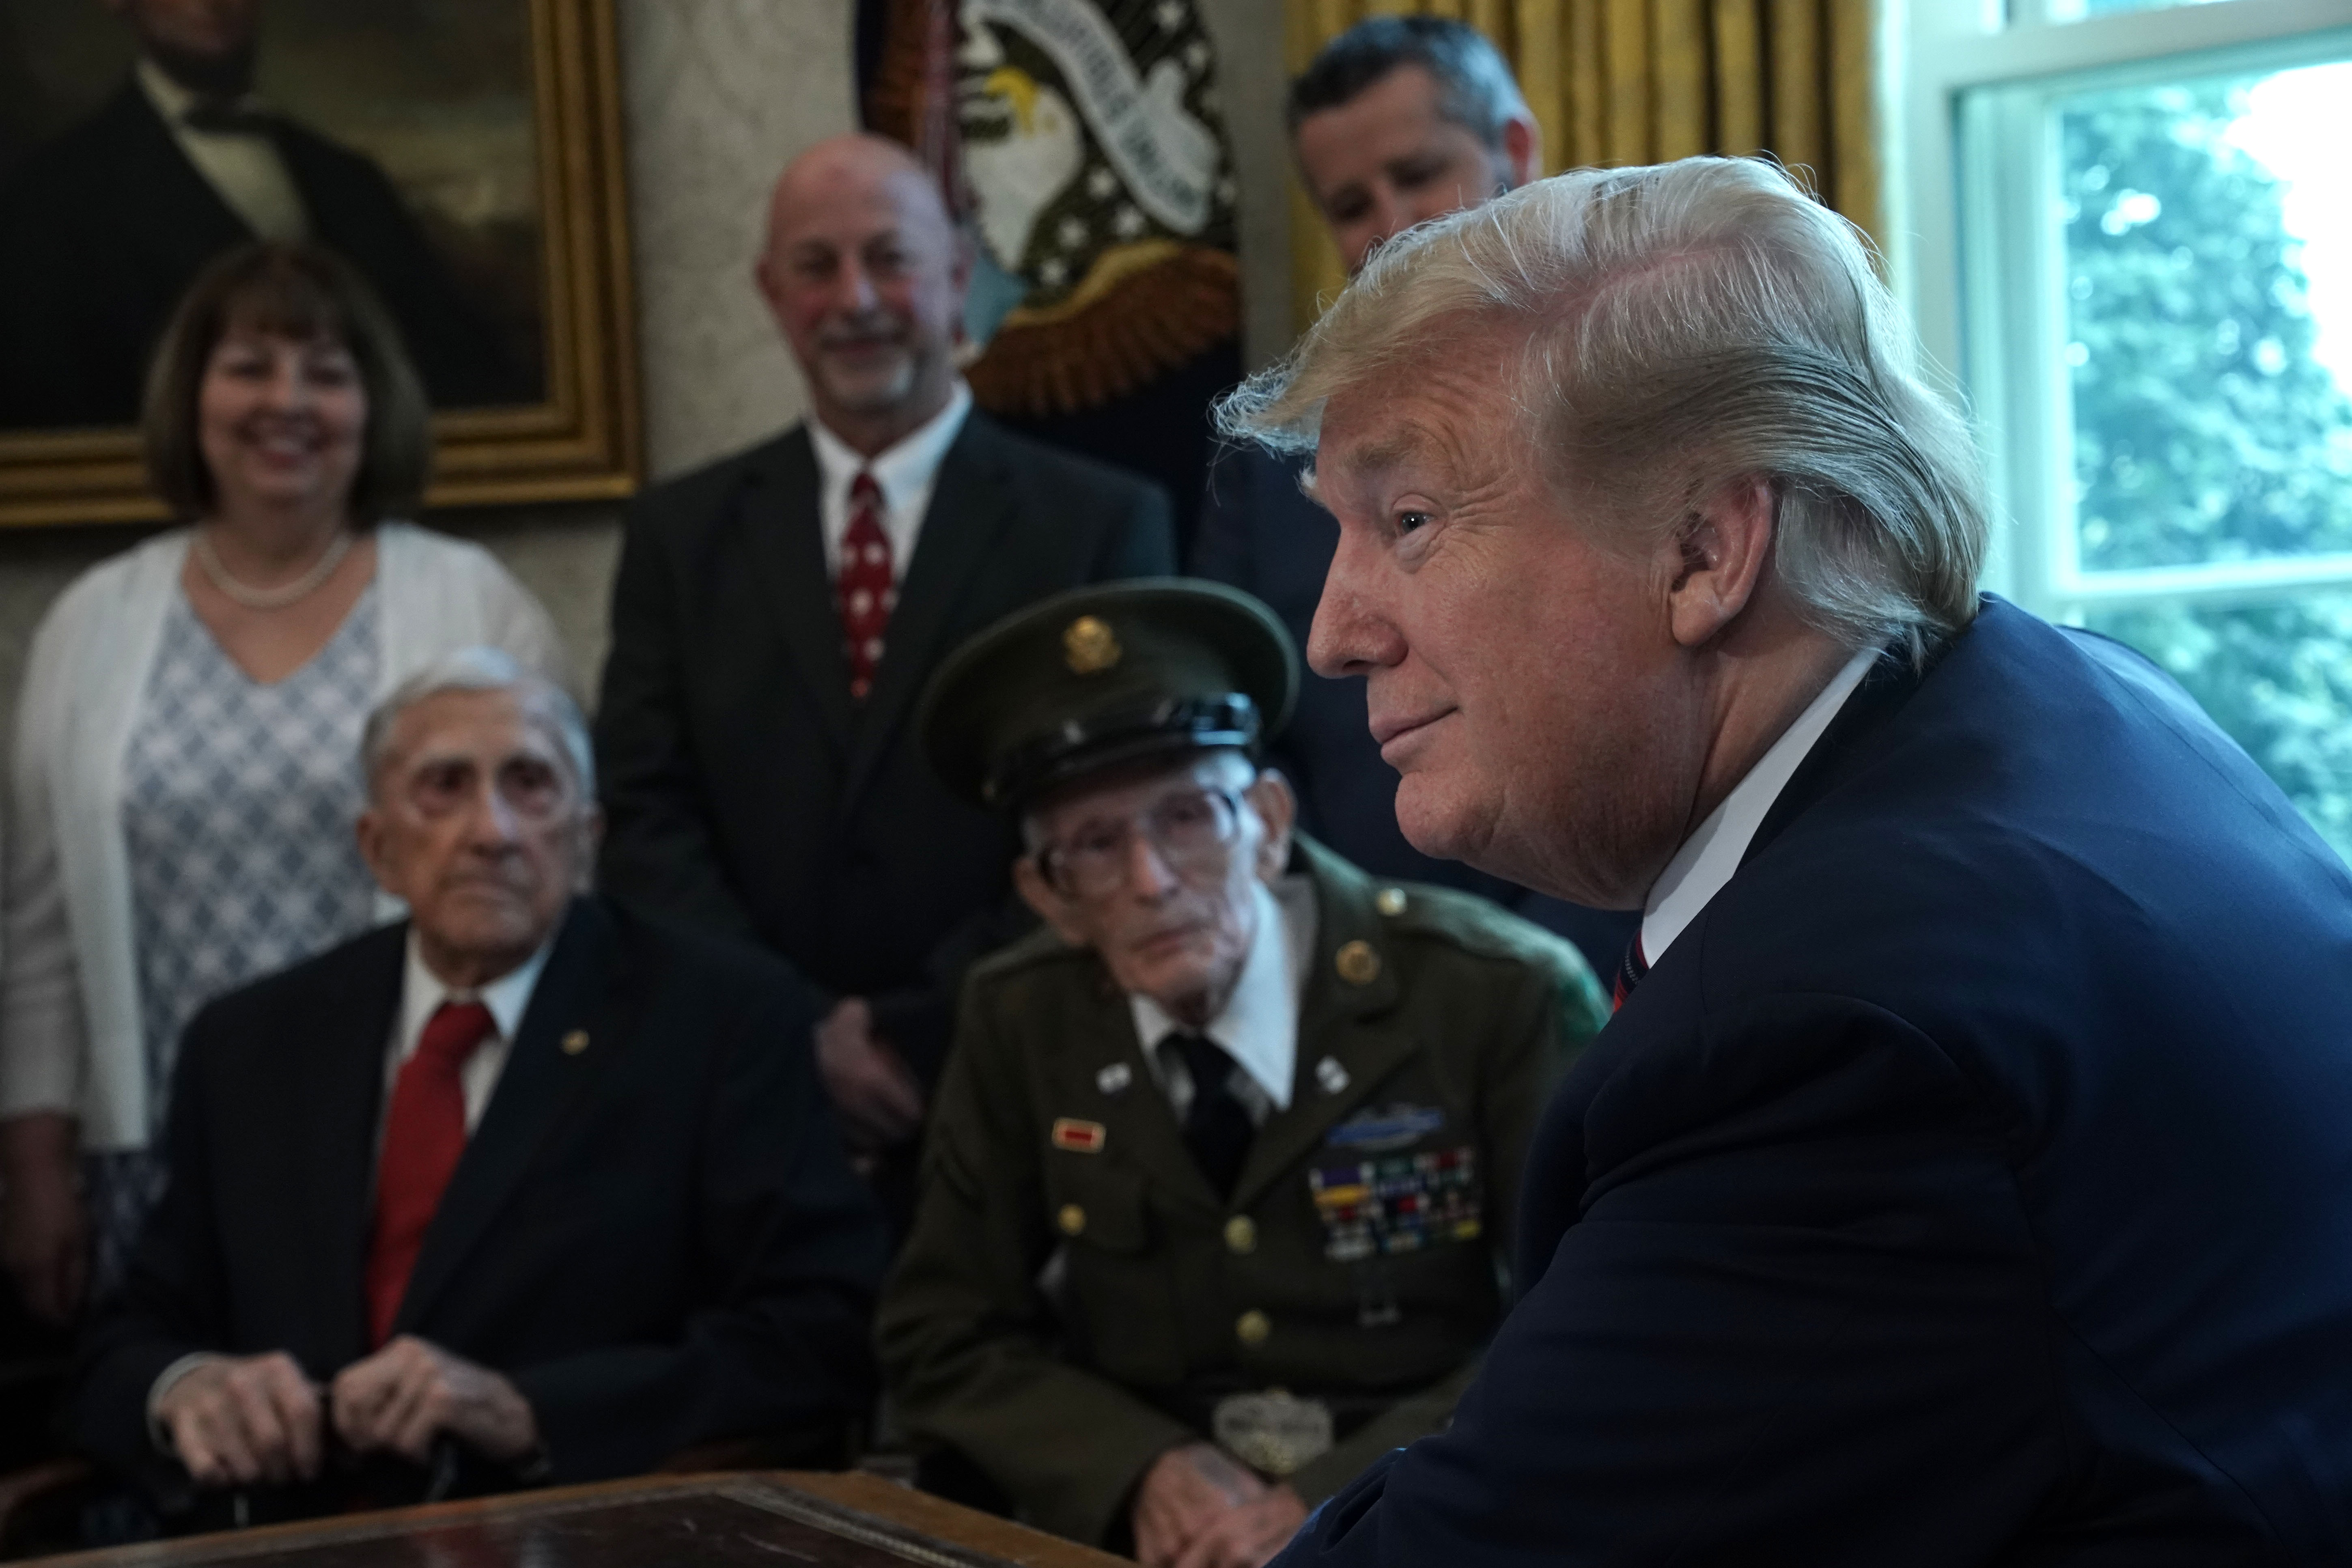 U.S. President Donald Trump meets with World War II veterans including Paul Kriner and Floyd Wigfield in the Oval Office of the White House April 11, 2019 in Washington, DC. (Photo by Alex Wong/Getty Images)